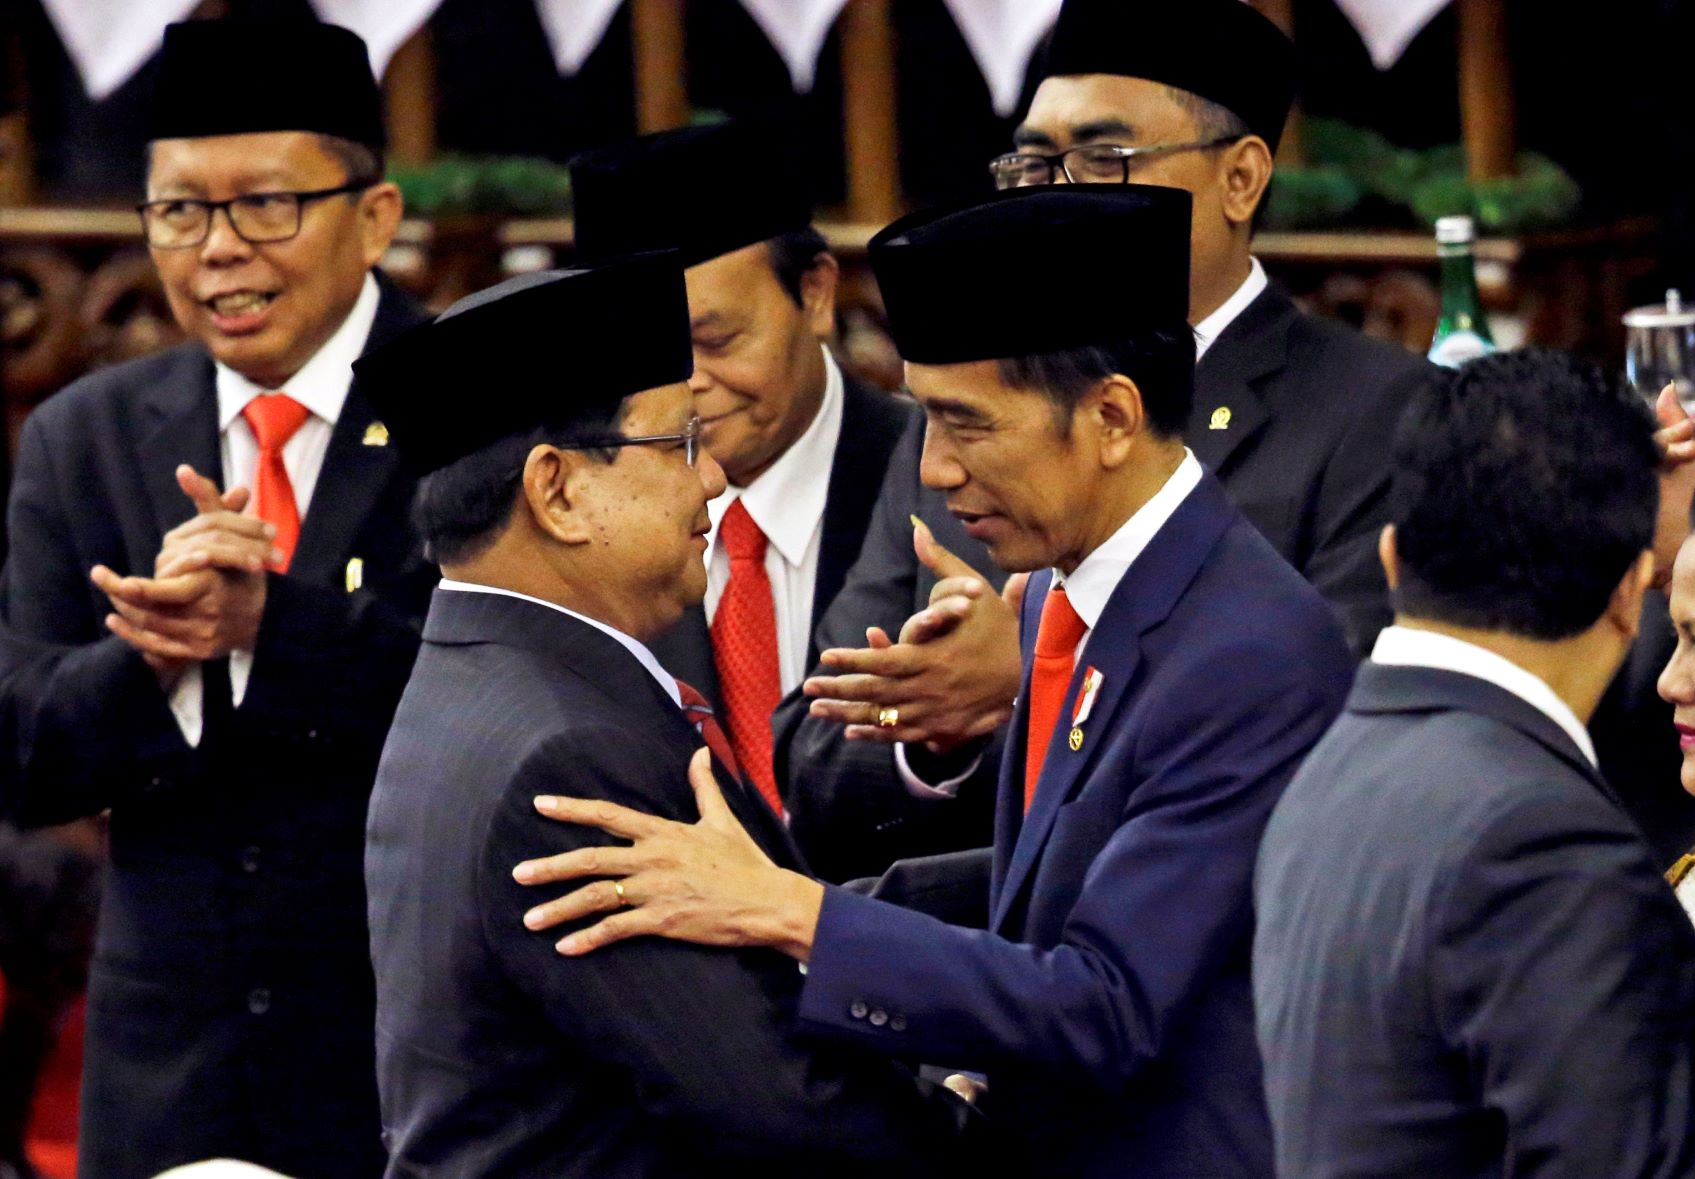 Indonesian election law revision a win for the ruling elite